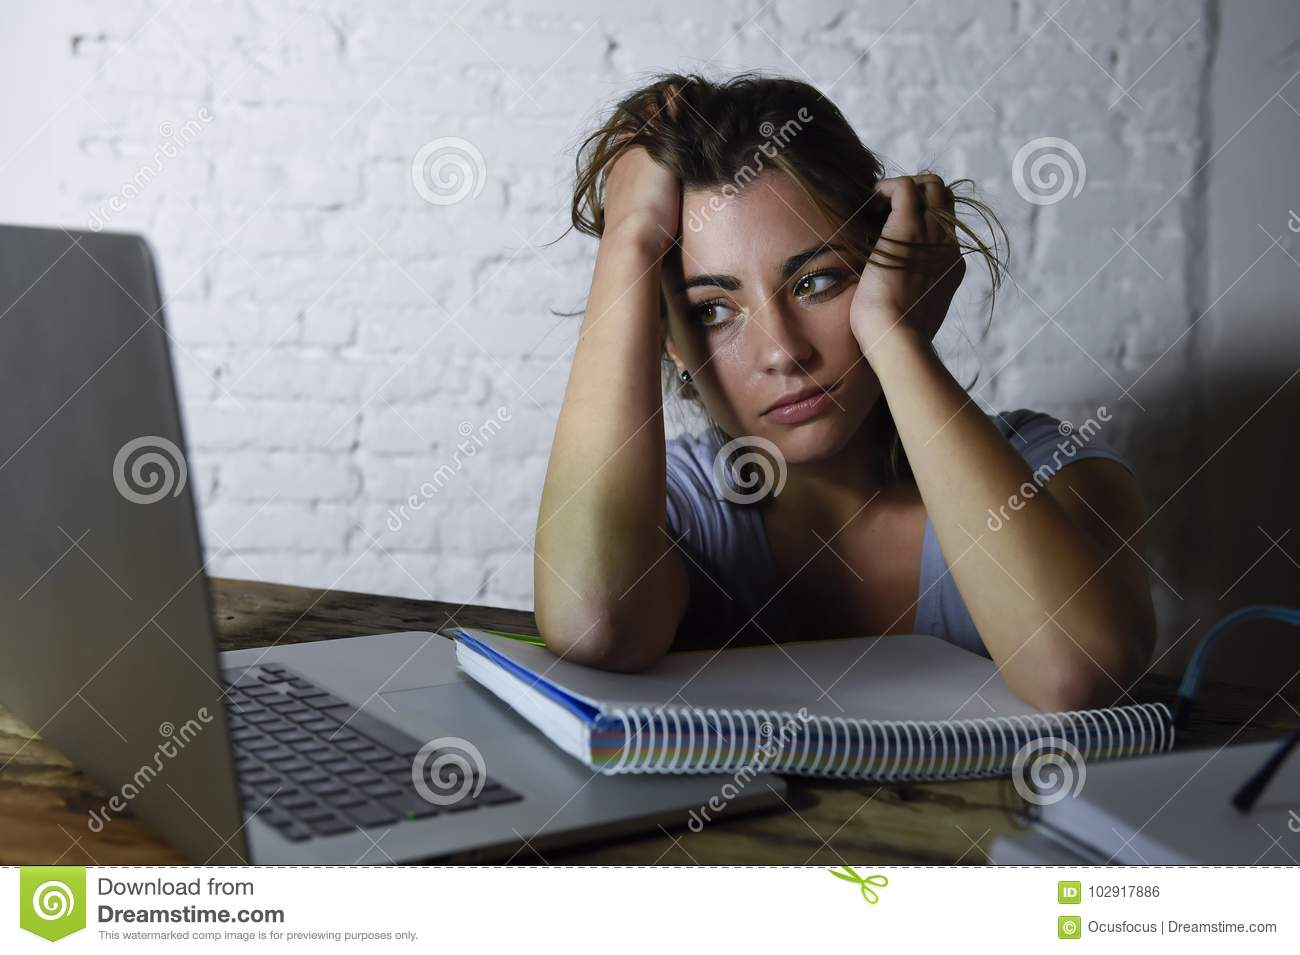 Young student girl studying tired at home laptop computer preparing exam exhausted and frustrated feeling stress